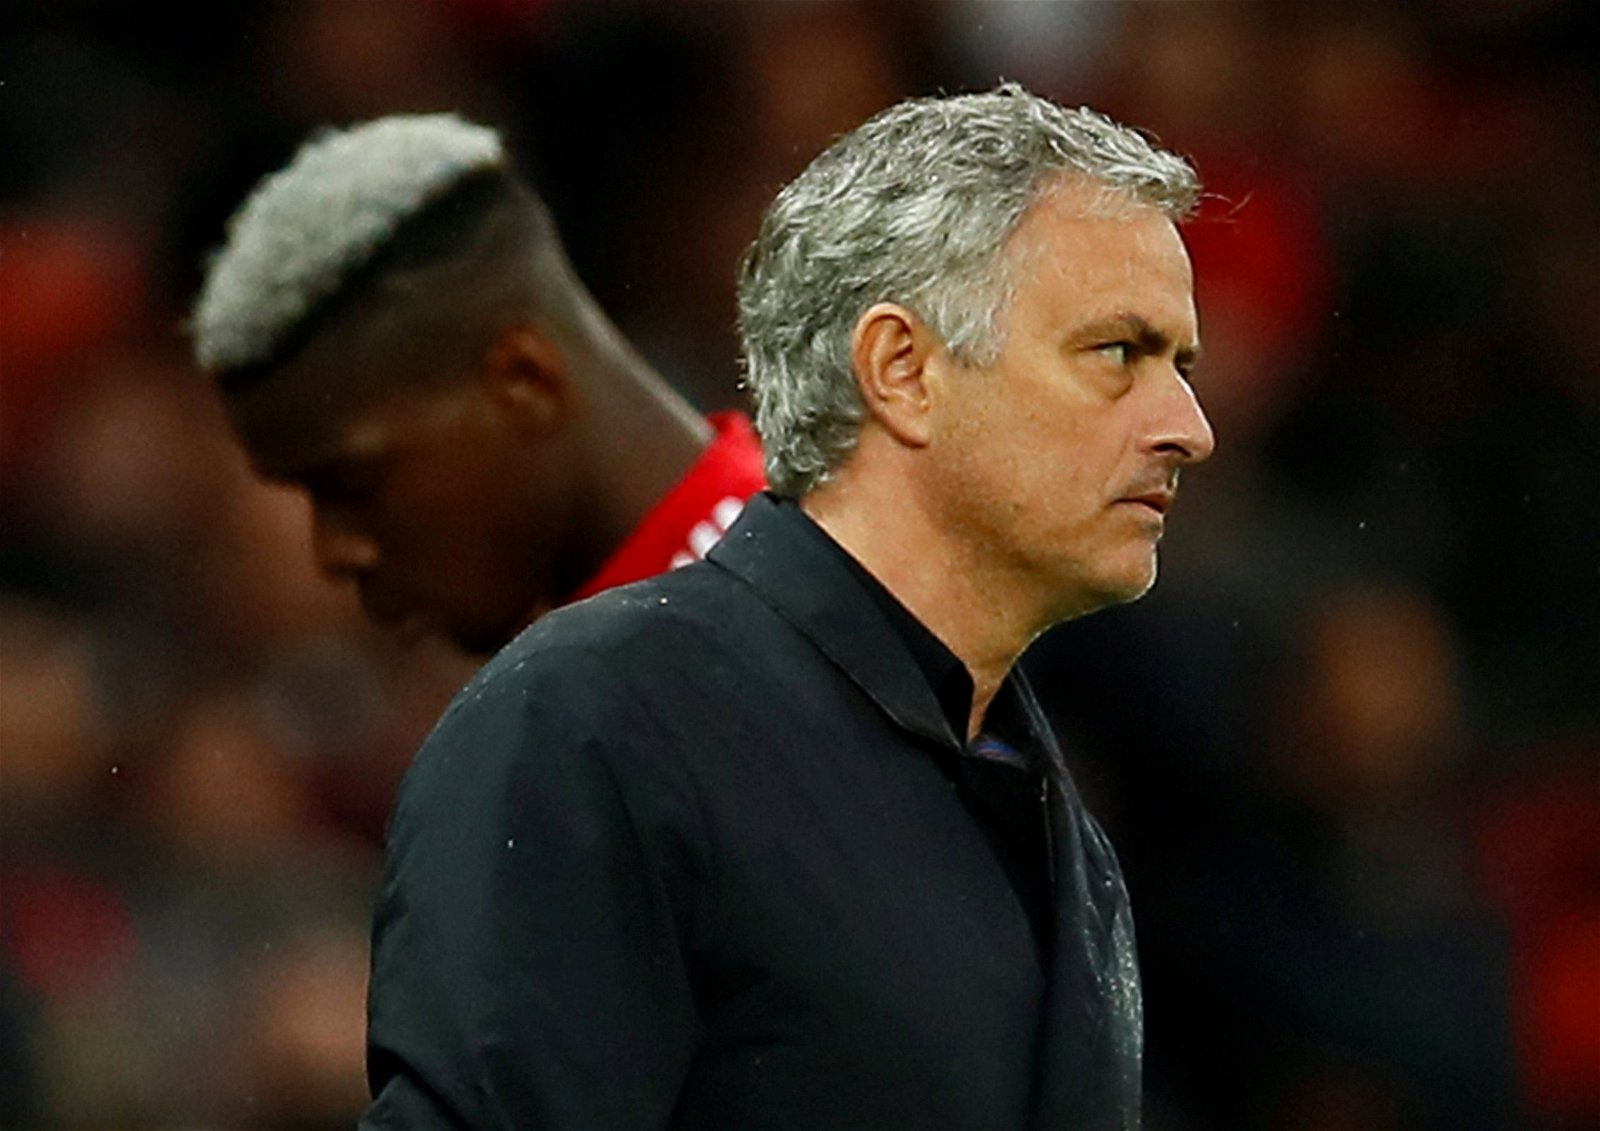 Manchester United's Jose Mourinho and Paul Pogba